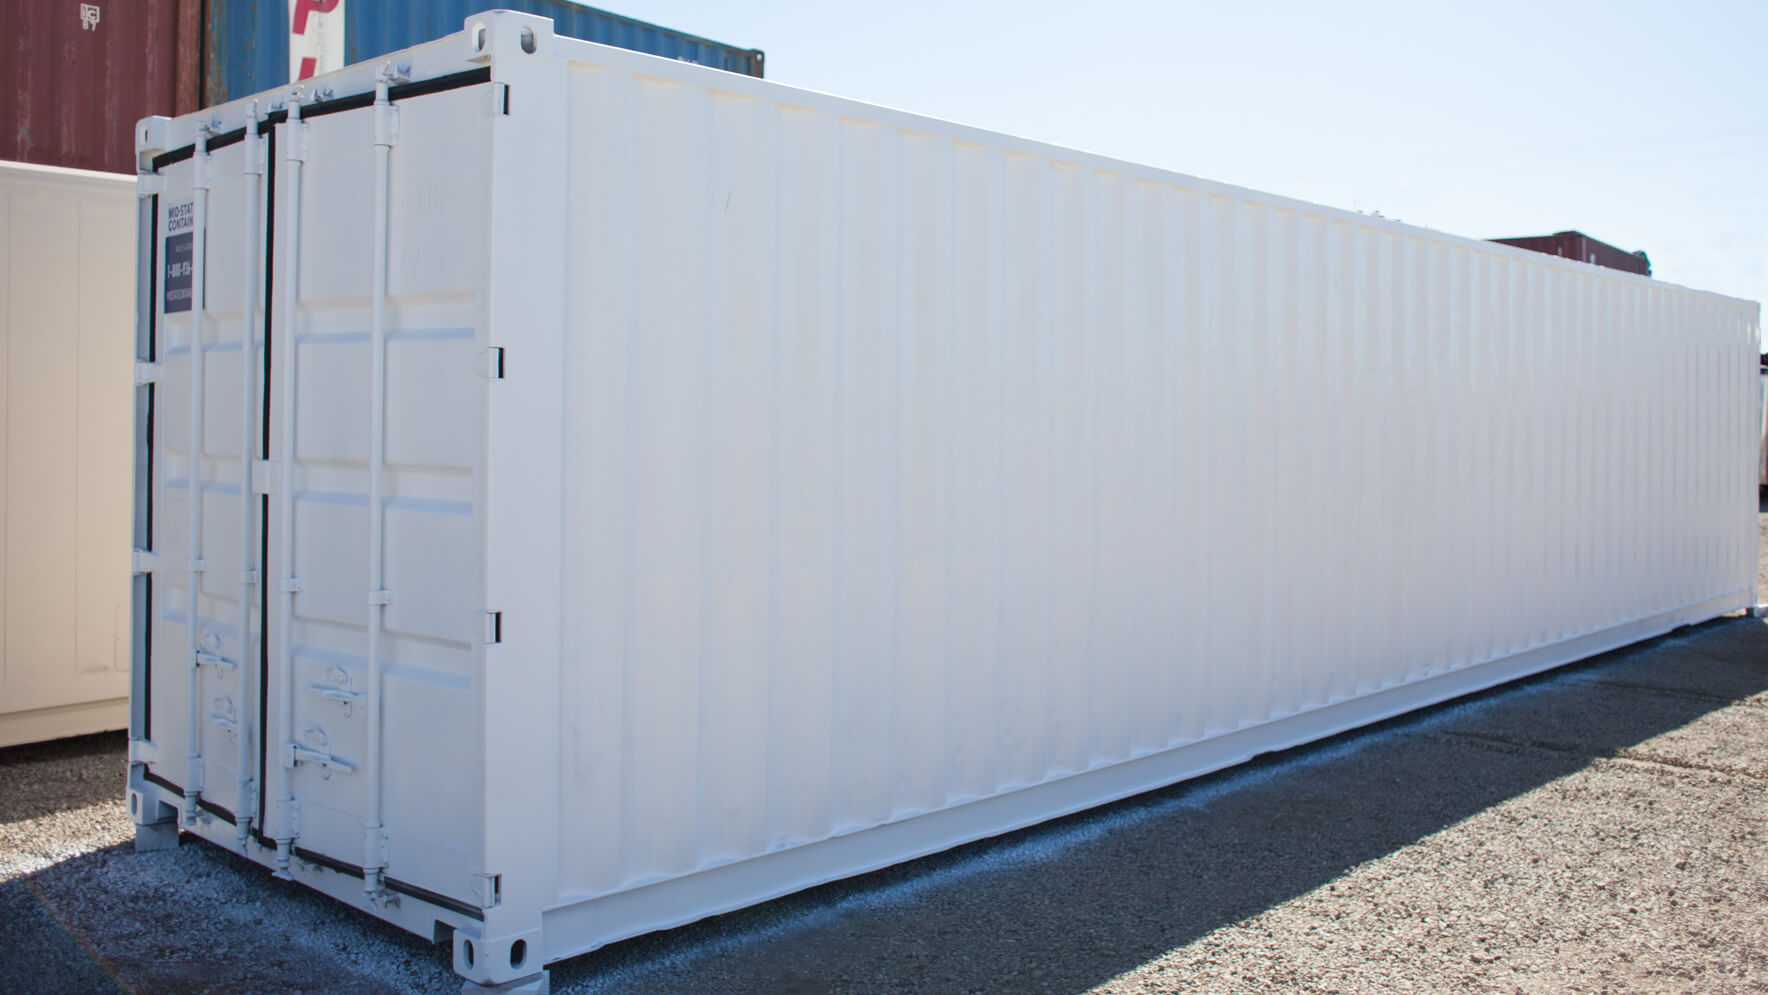 40 painted seatrain container.jpg